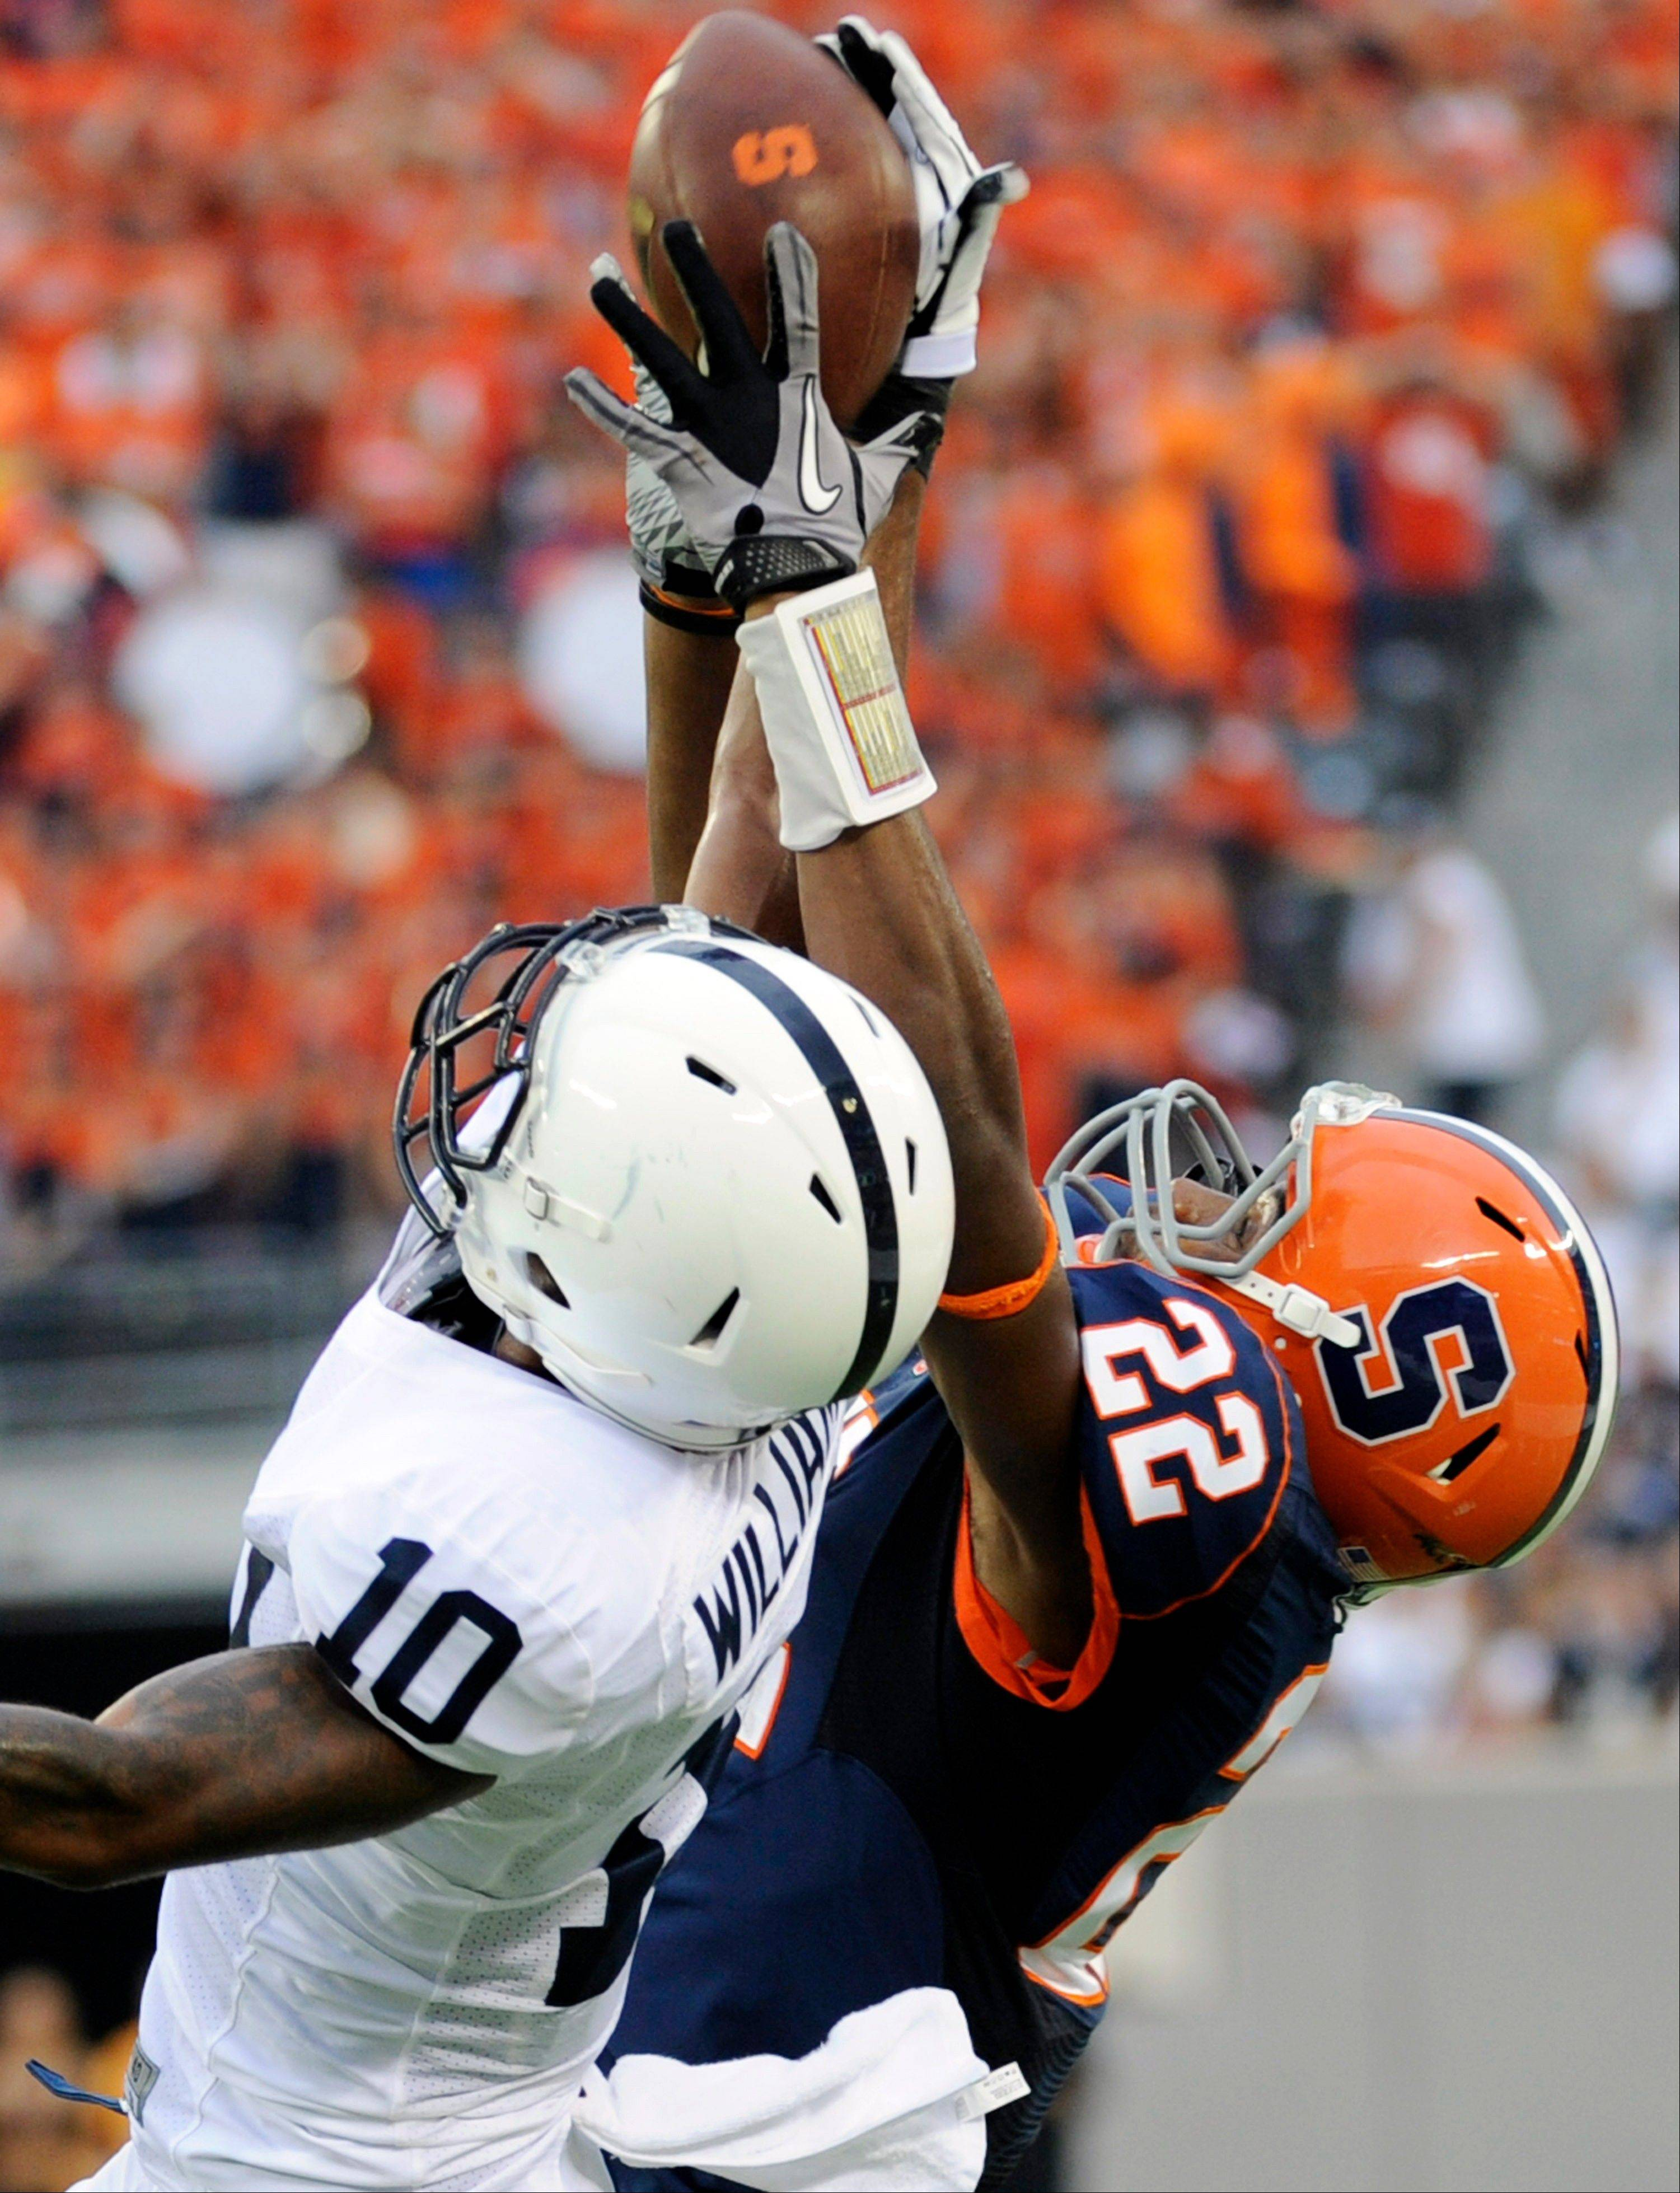 Syracuse wide receiver Adrian Flemming (22) makes a catch over Penn State cornerback Trevor Williams during the third quarter of an NCAA college football game Saturday in East Rutherford, N.J. Penn State won 23-17.